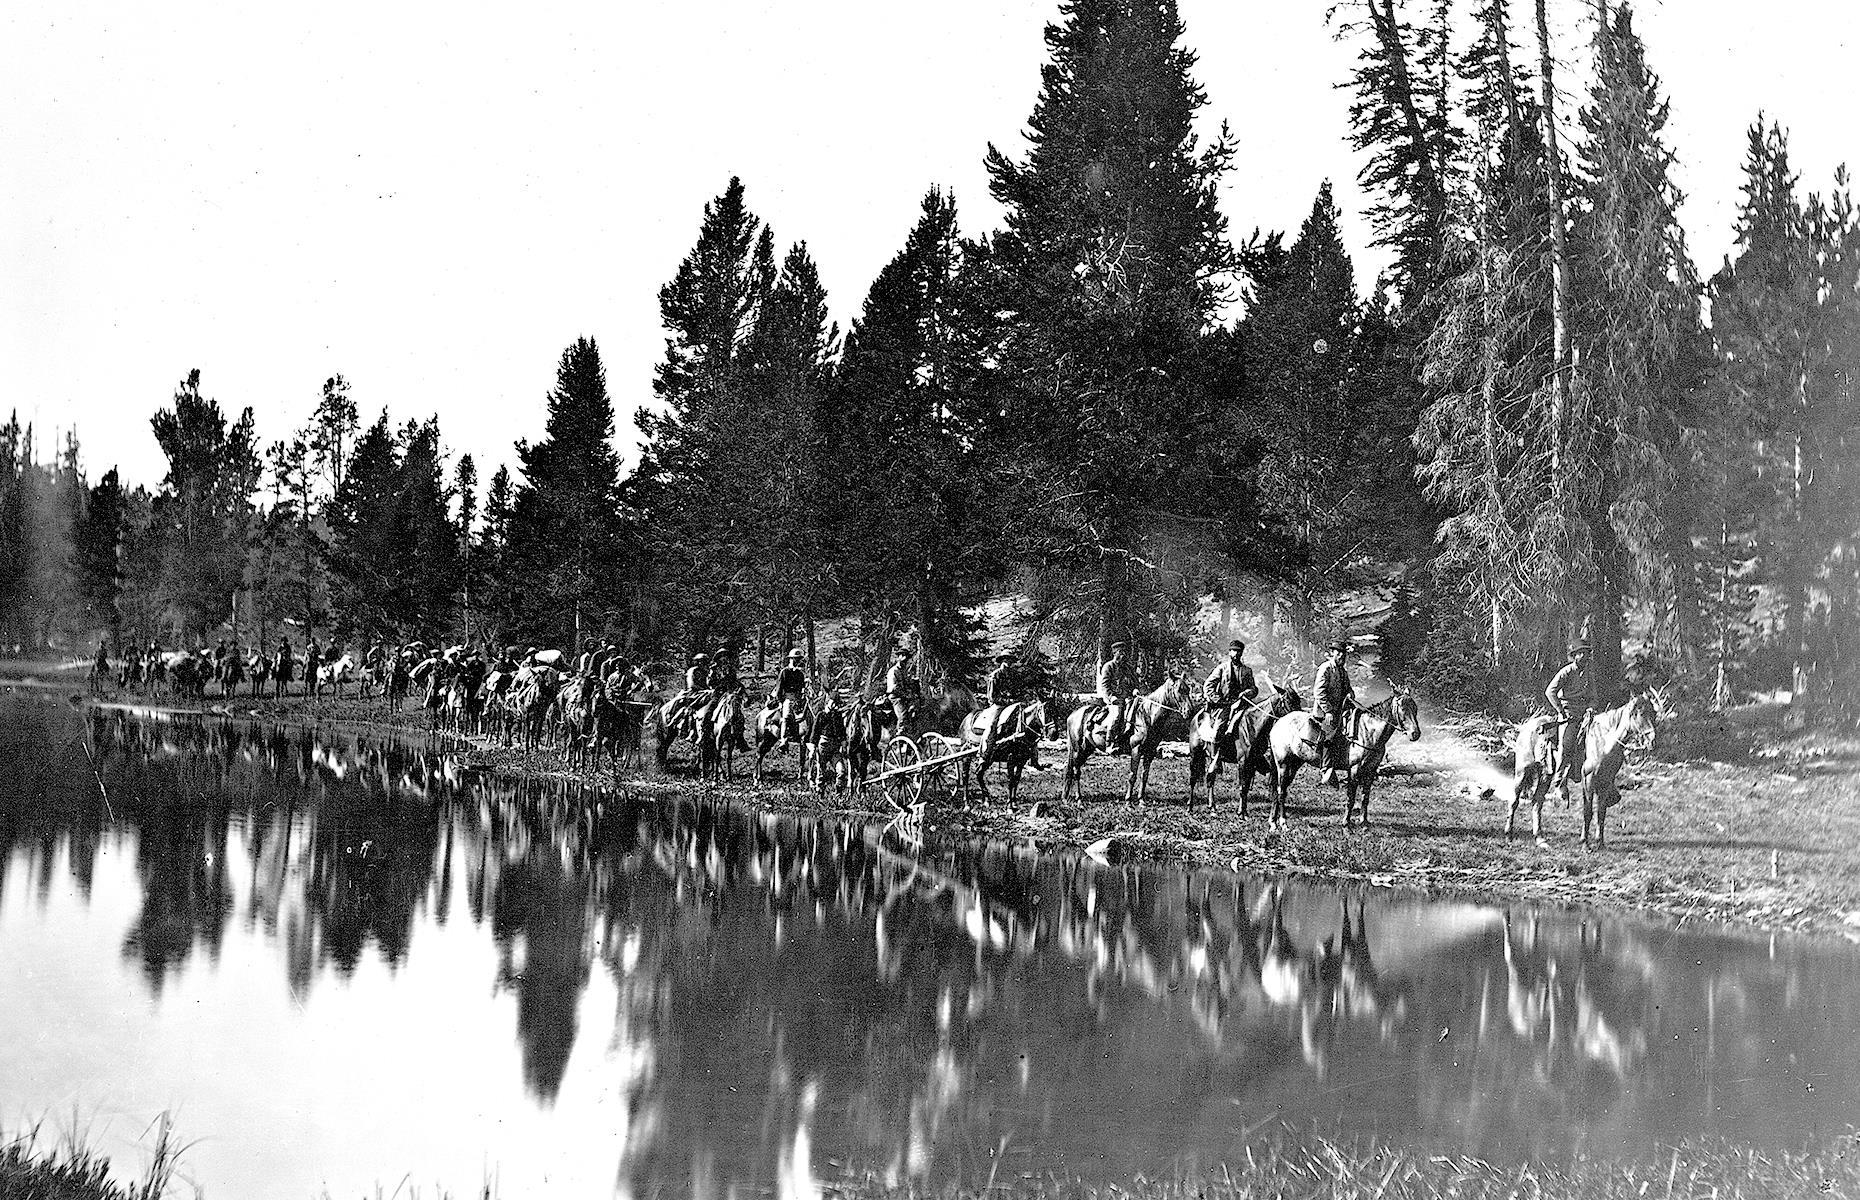 Slide 4 of 51: The first National Park in the US, Yellowstone was established in 1872 and covers a large region in northwestern Wyoming as well as Montana and Idaho. This photograph was captured prior to its official founding and shows men carrying out the Hayden Geological Survey of 1871. Tourists began to visit by rail or horse and carriage from the late 1800s, although it wasn't until cars were allowed in 1915 that tourism really spiked. For thousands of years, Yellowstone has been home to indigenous people and today26 tribes have ties to the area.